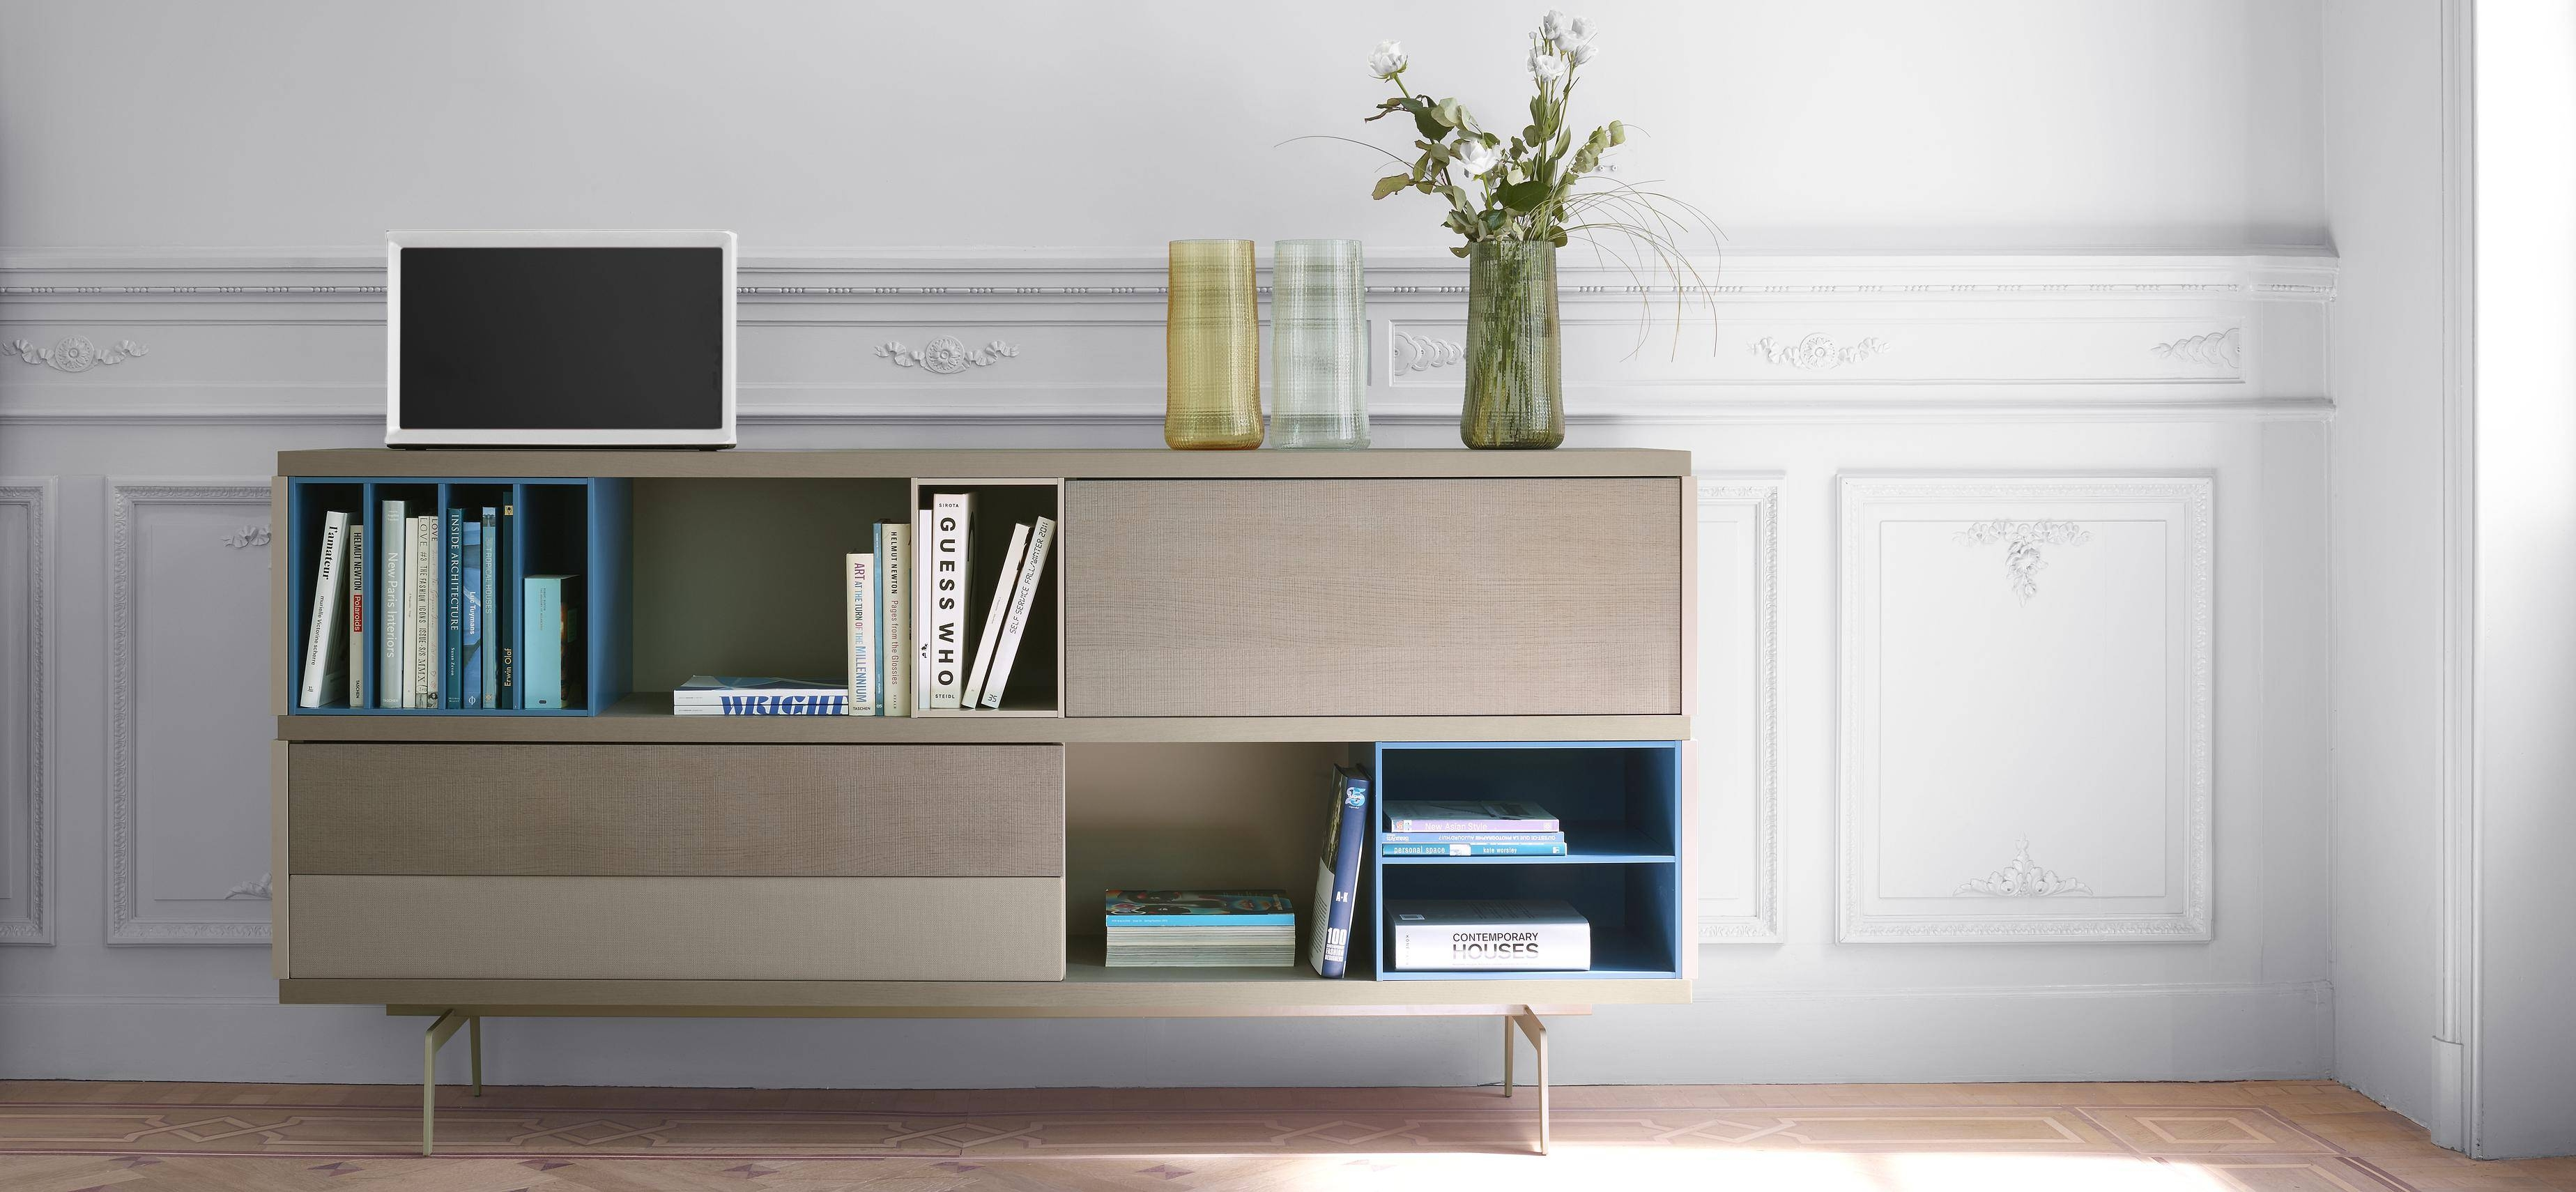 Mixte Living Room, Sideboards Designer : Mauro Lipparini | Ligne Roset pertaining to Sideboards For Living Room (Image 17 of 30)